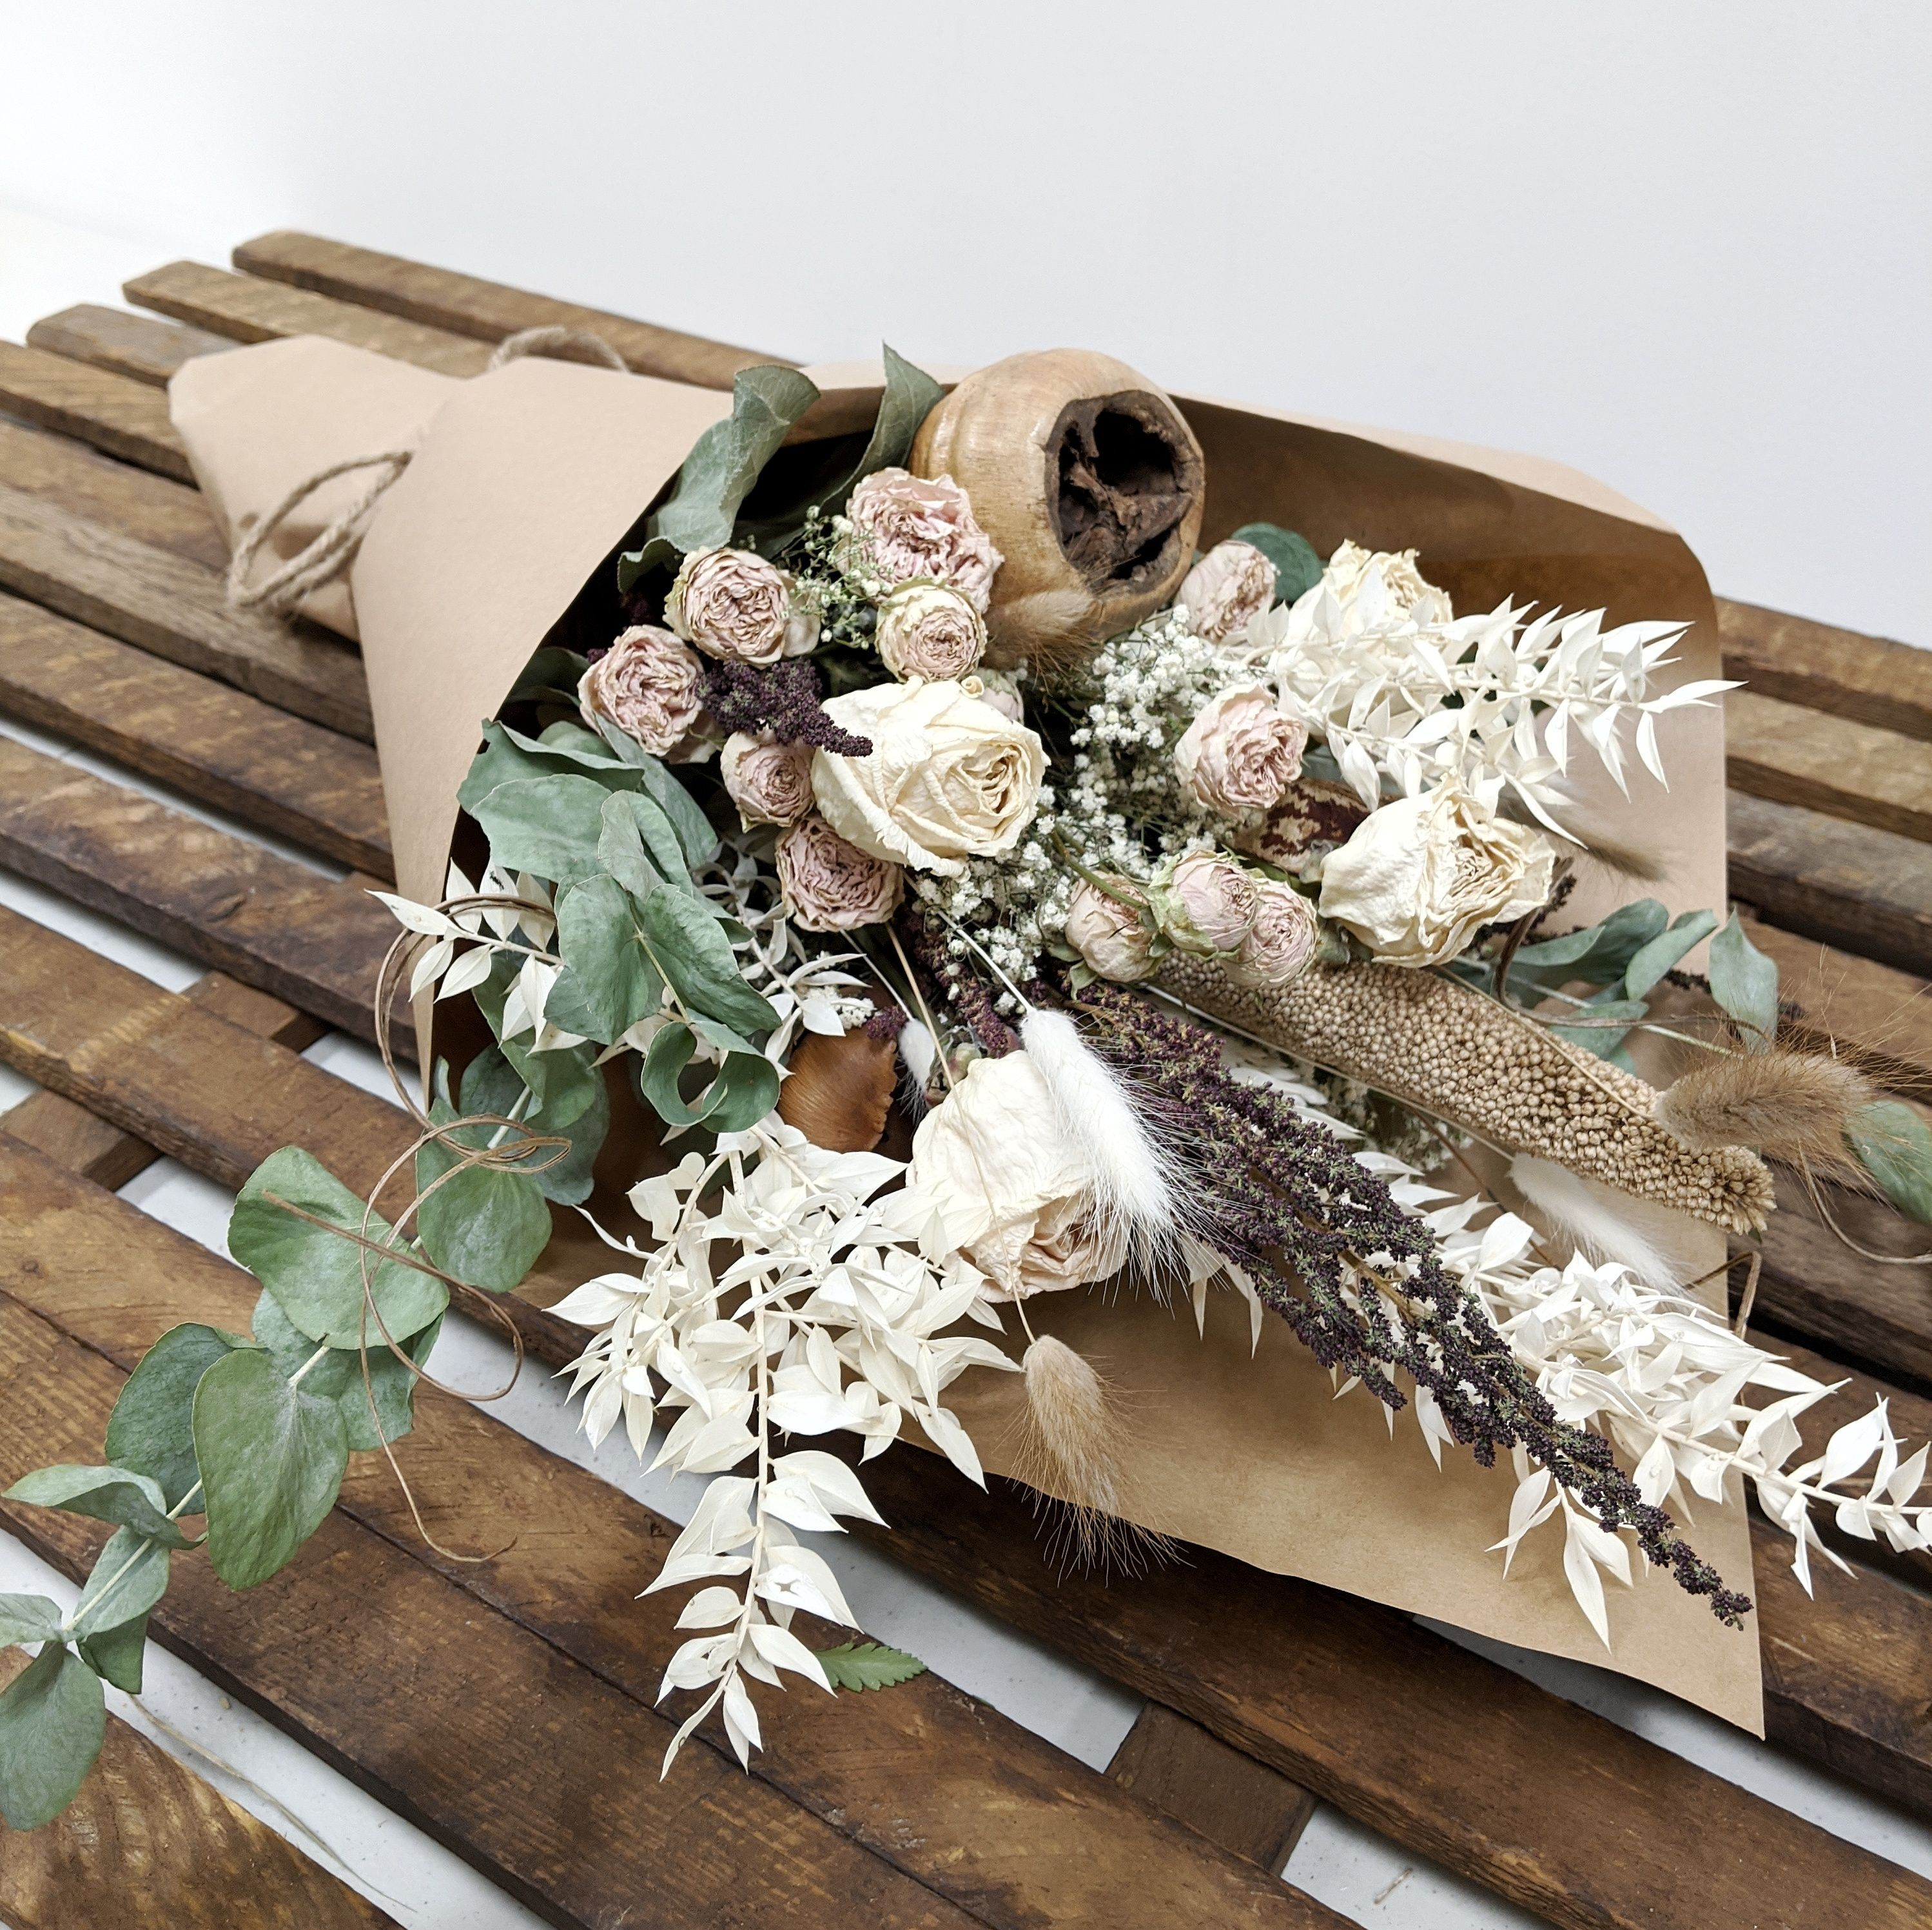 Large Neutral Dried Bouquet Goderich Florist Olive And Rose Flower Studio Local Flower Delivery Goderich On N7a 2k5